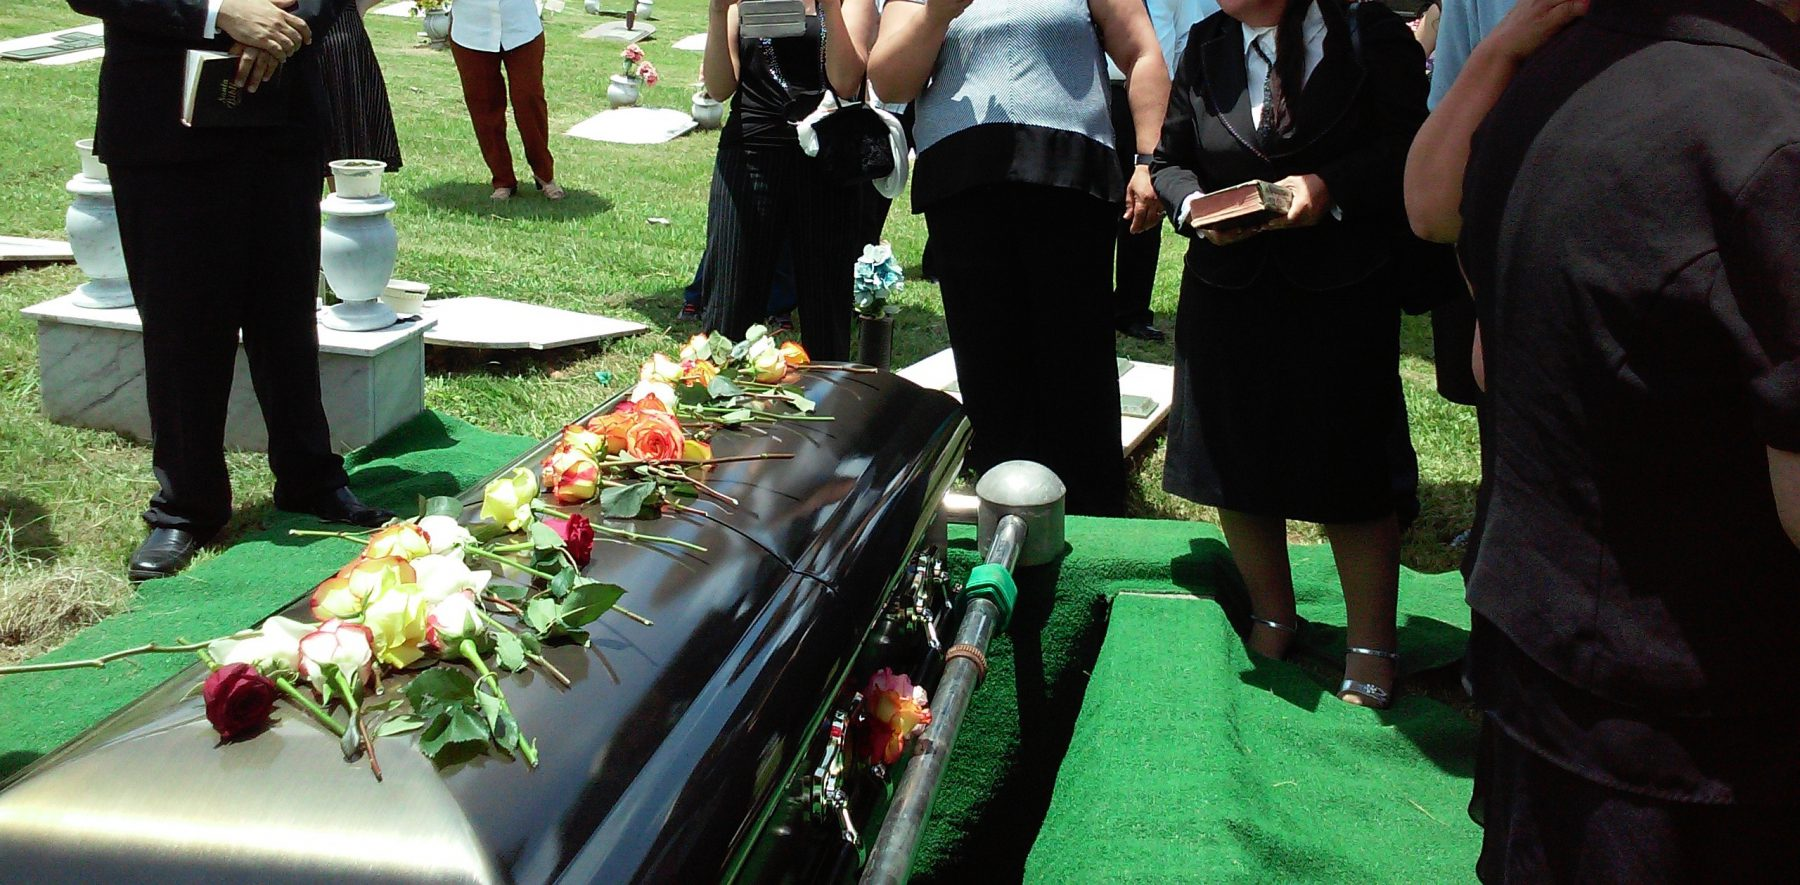 People at burial funeral